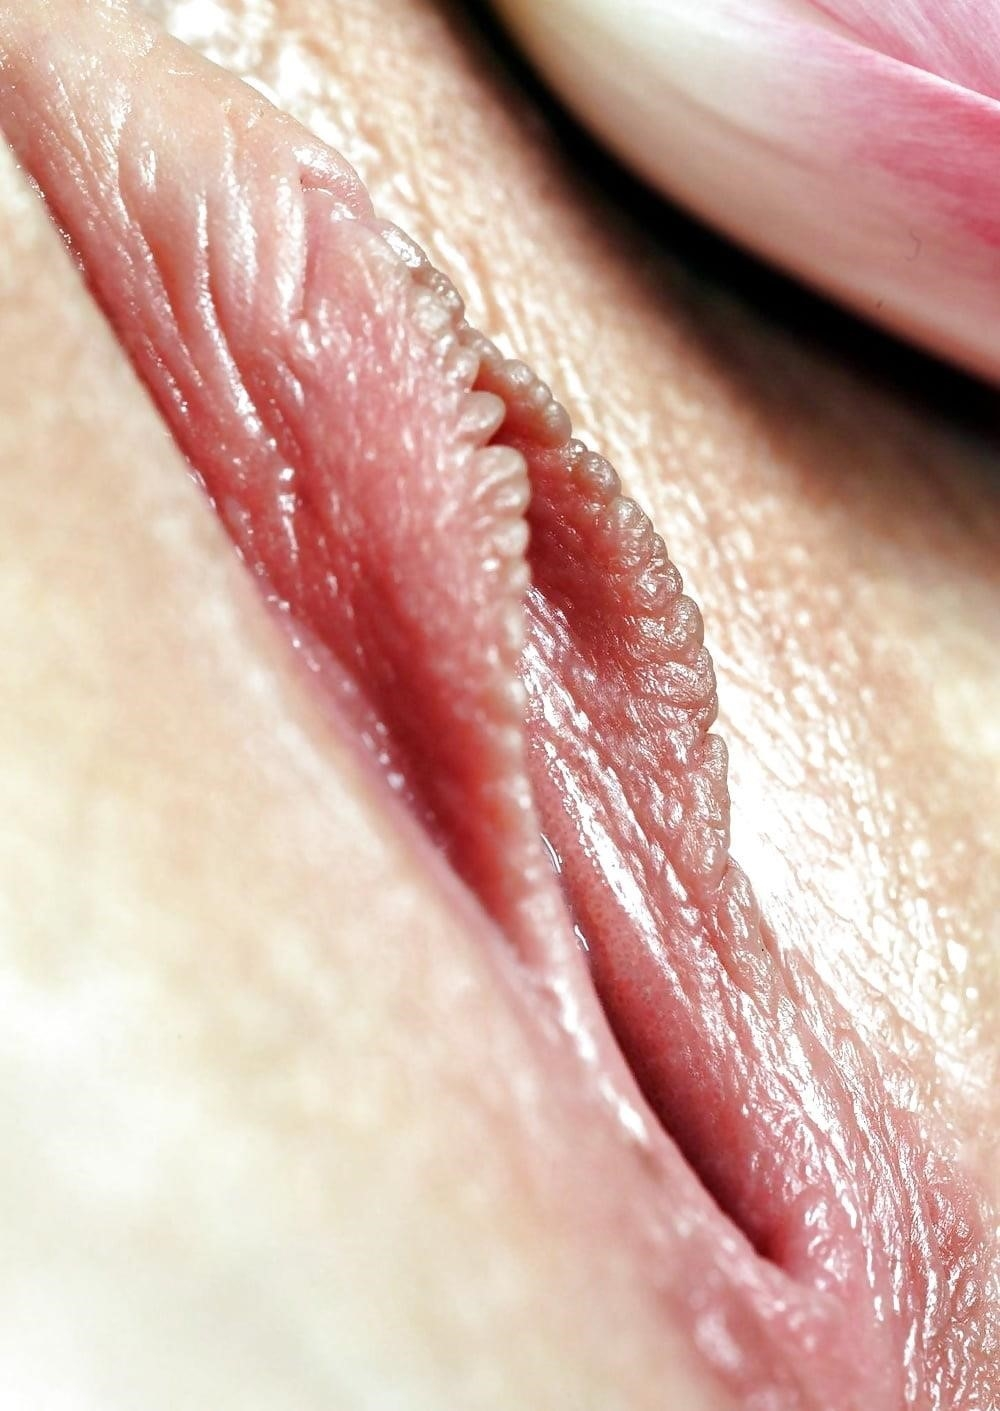 Women with large clitoris-5665